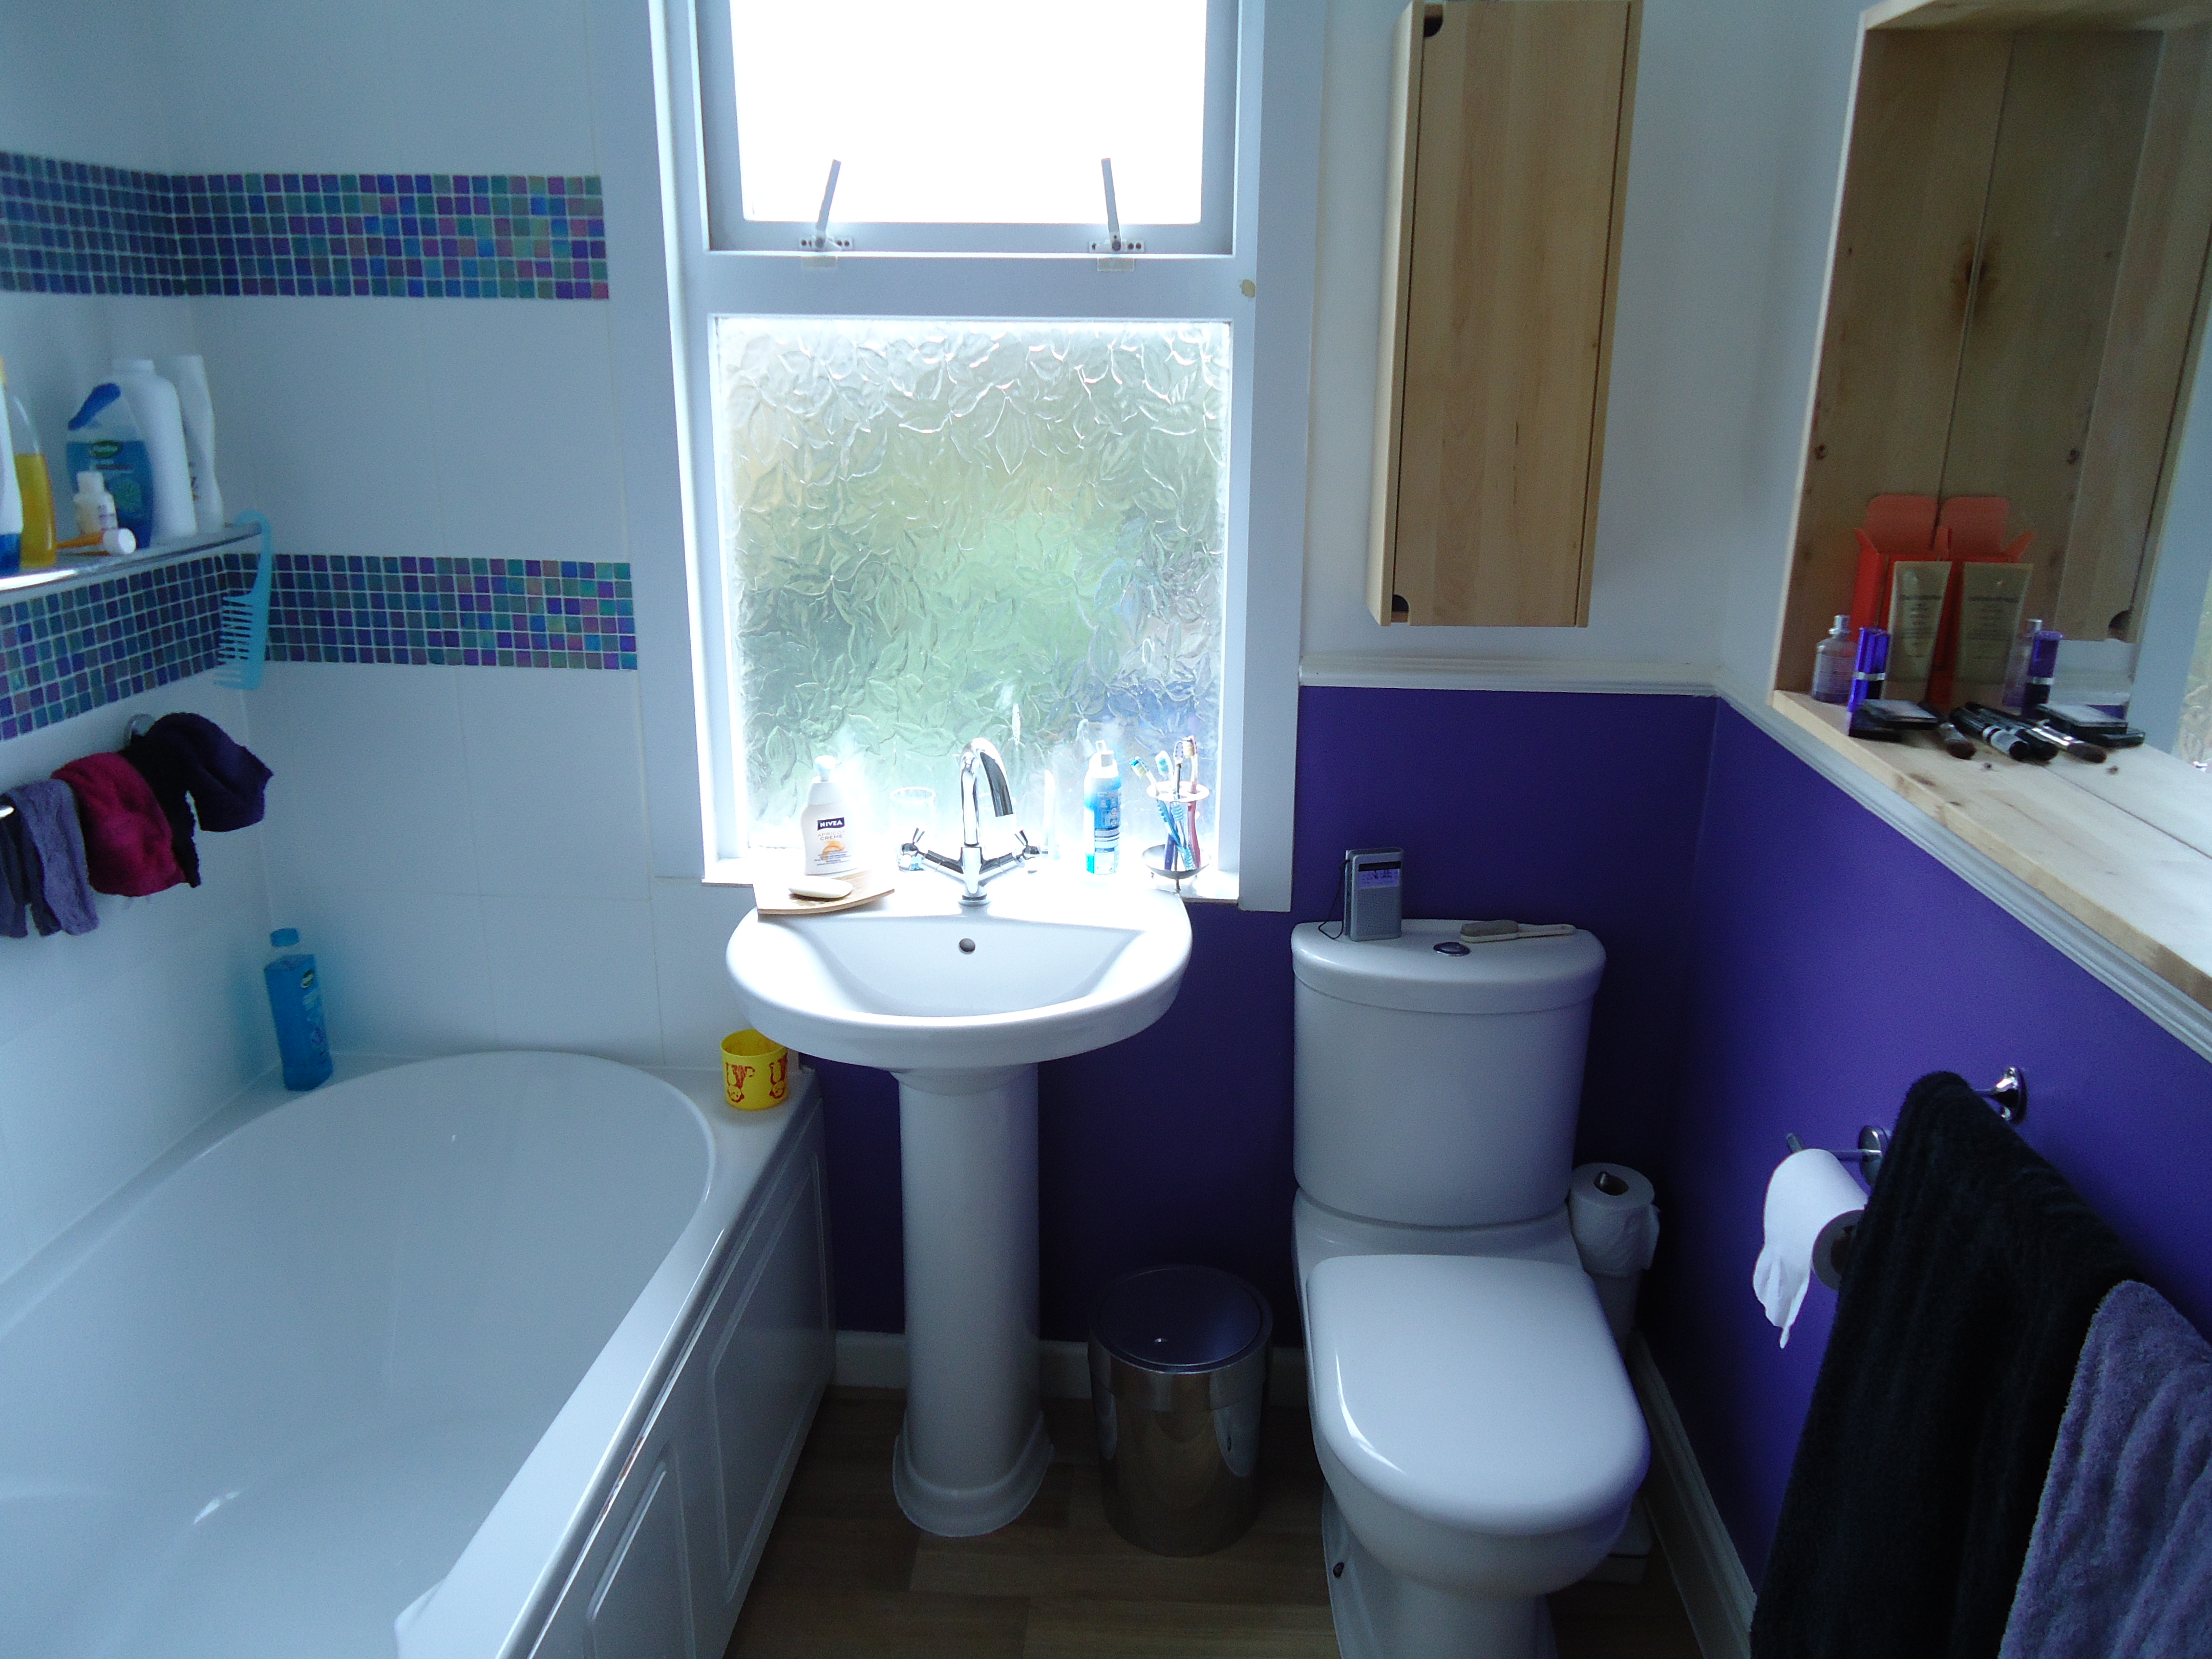 It Is A Very Small Bathroom And We Kept The Arrangement Of The Bath Basin And Toilet As There Was Little Choice To Be Honest There Was An Existing Big